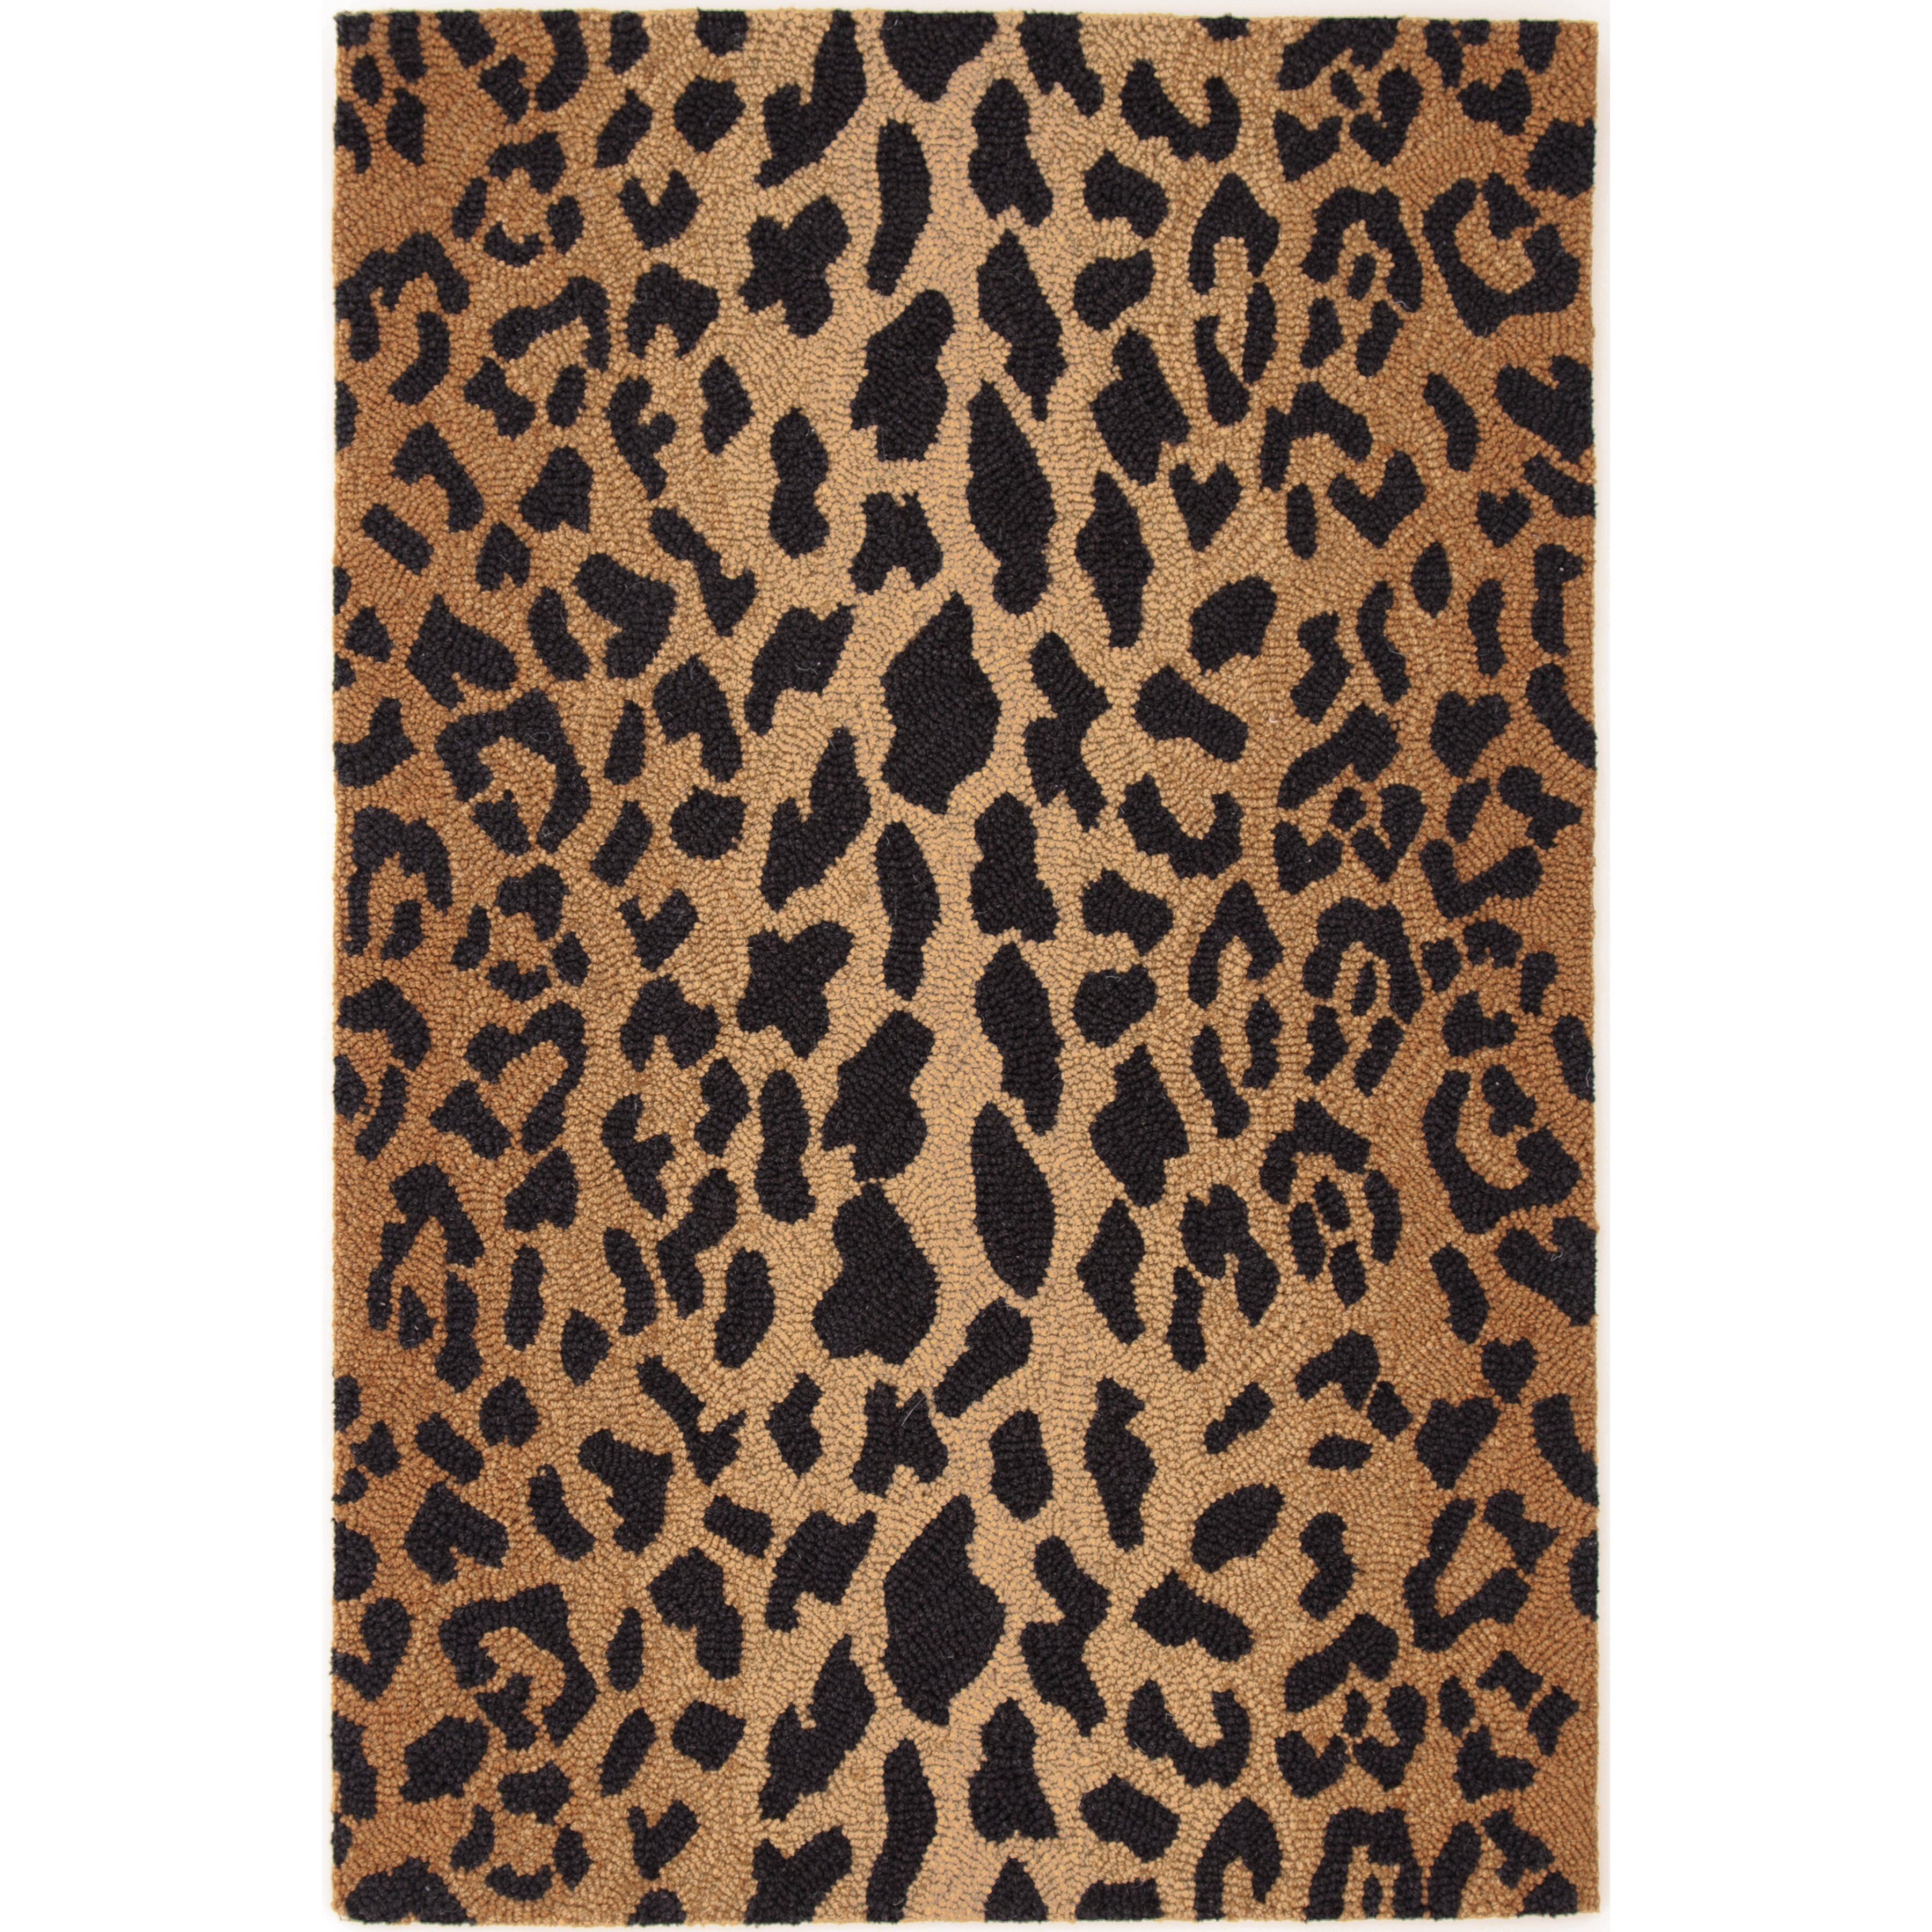 Dash And Albert Rugs Leopard Area Rug & Reviews